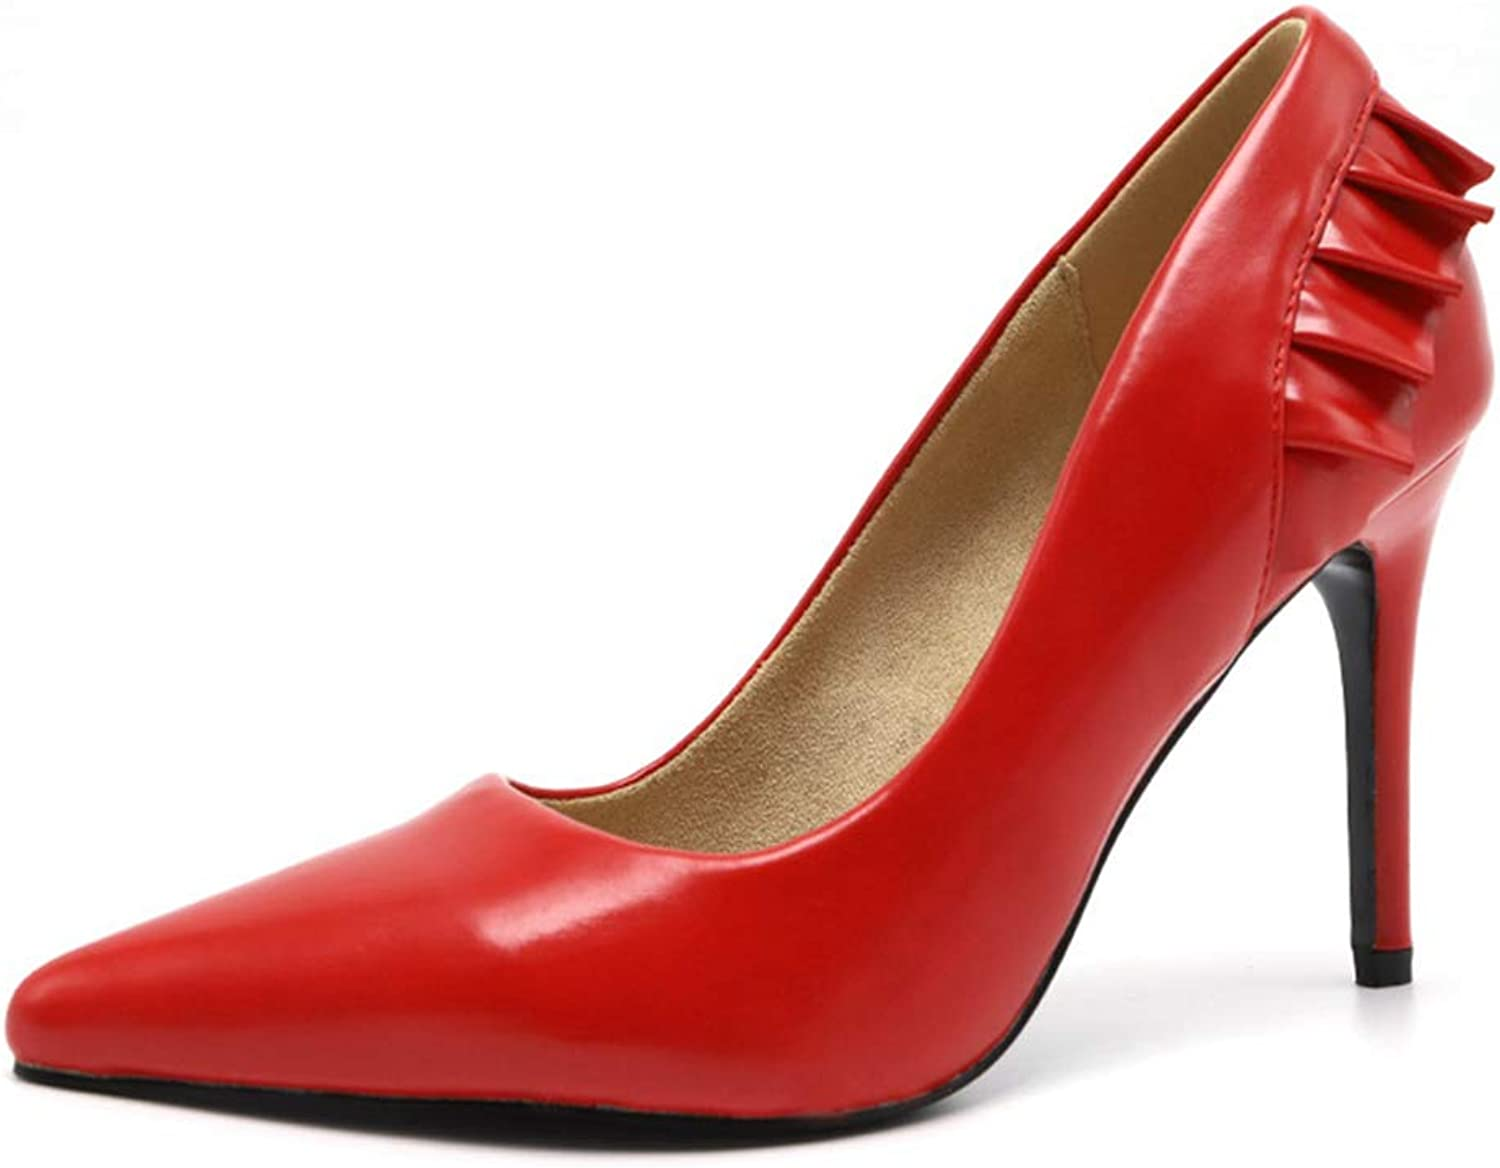 Sam Carle Womens Pumps,Pointed Toe Super High Thin Heel Slip On Wedding Party shoes Red Pumps